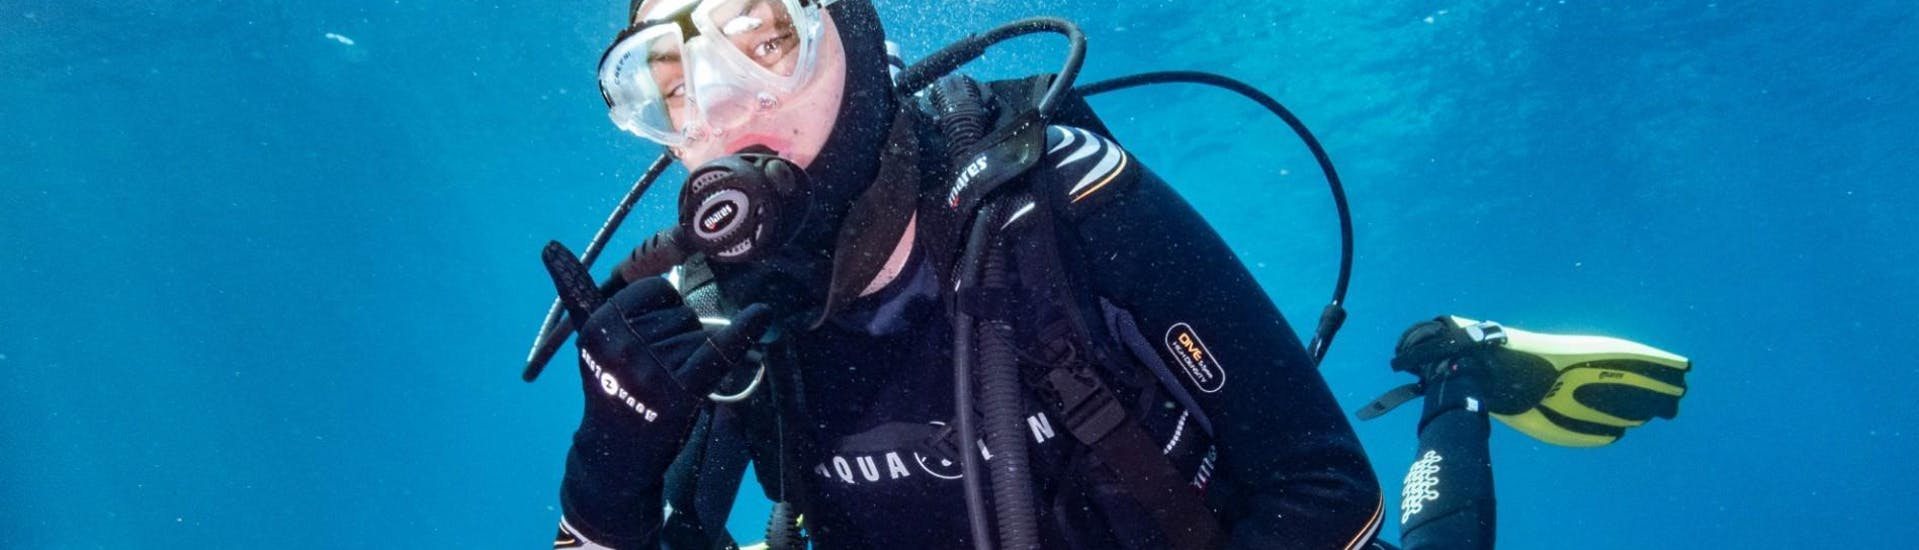 scuba-diving-course-padi-advanced-open-water-diver-dive-academy-santa-pola-hero